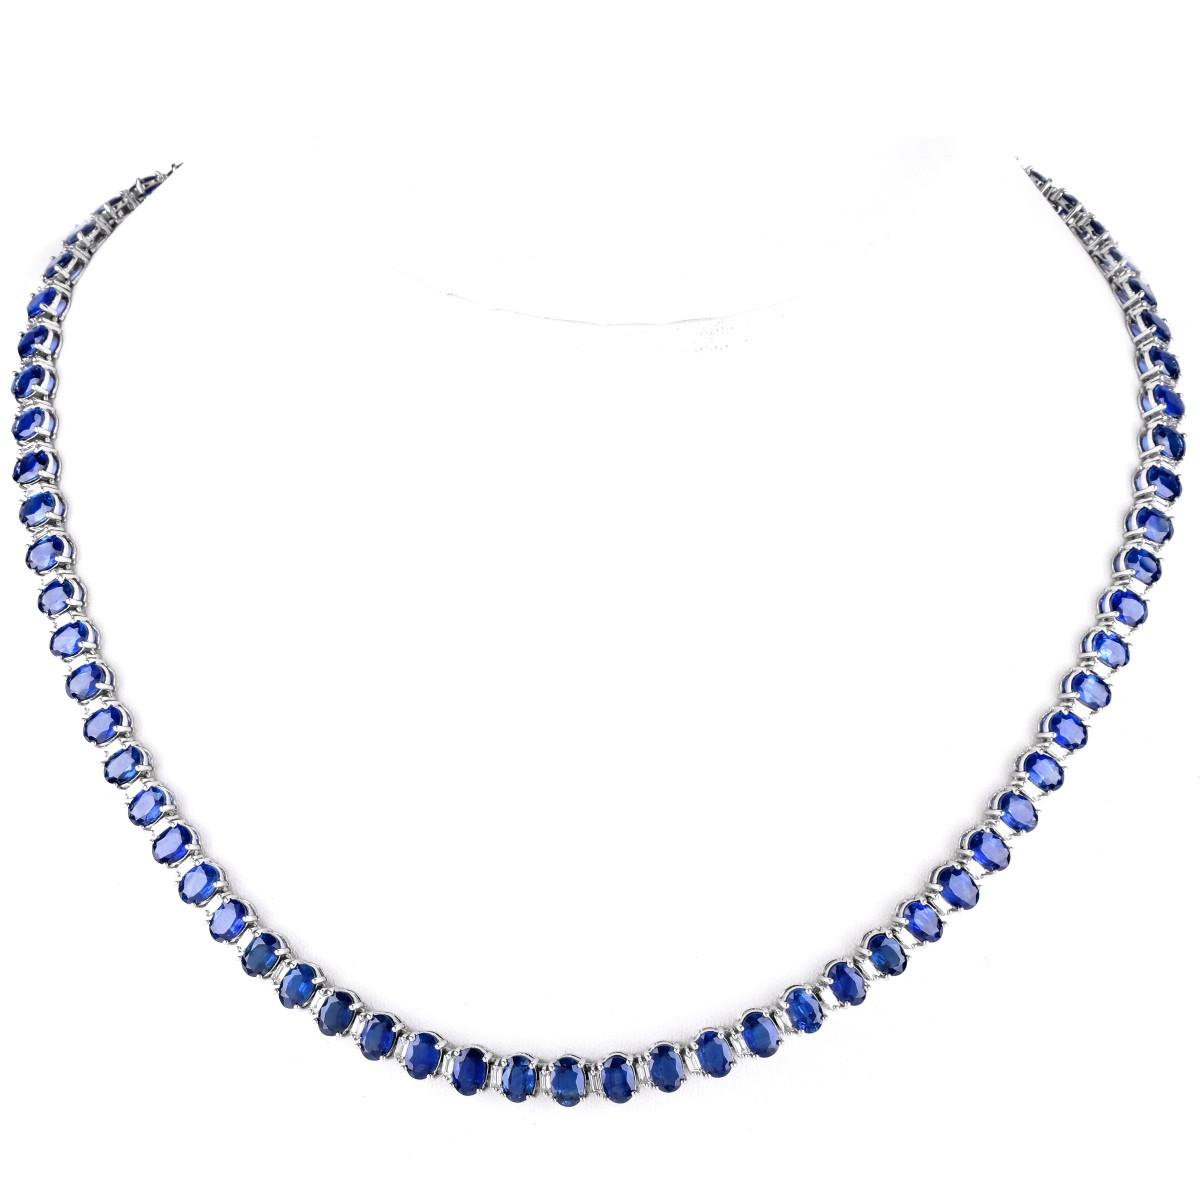 50.0ct Sapphire, Diamond and 18K Gold Necklace